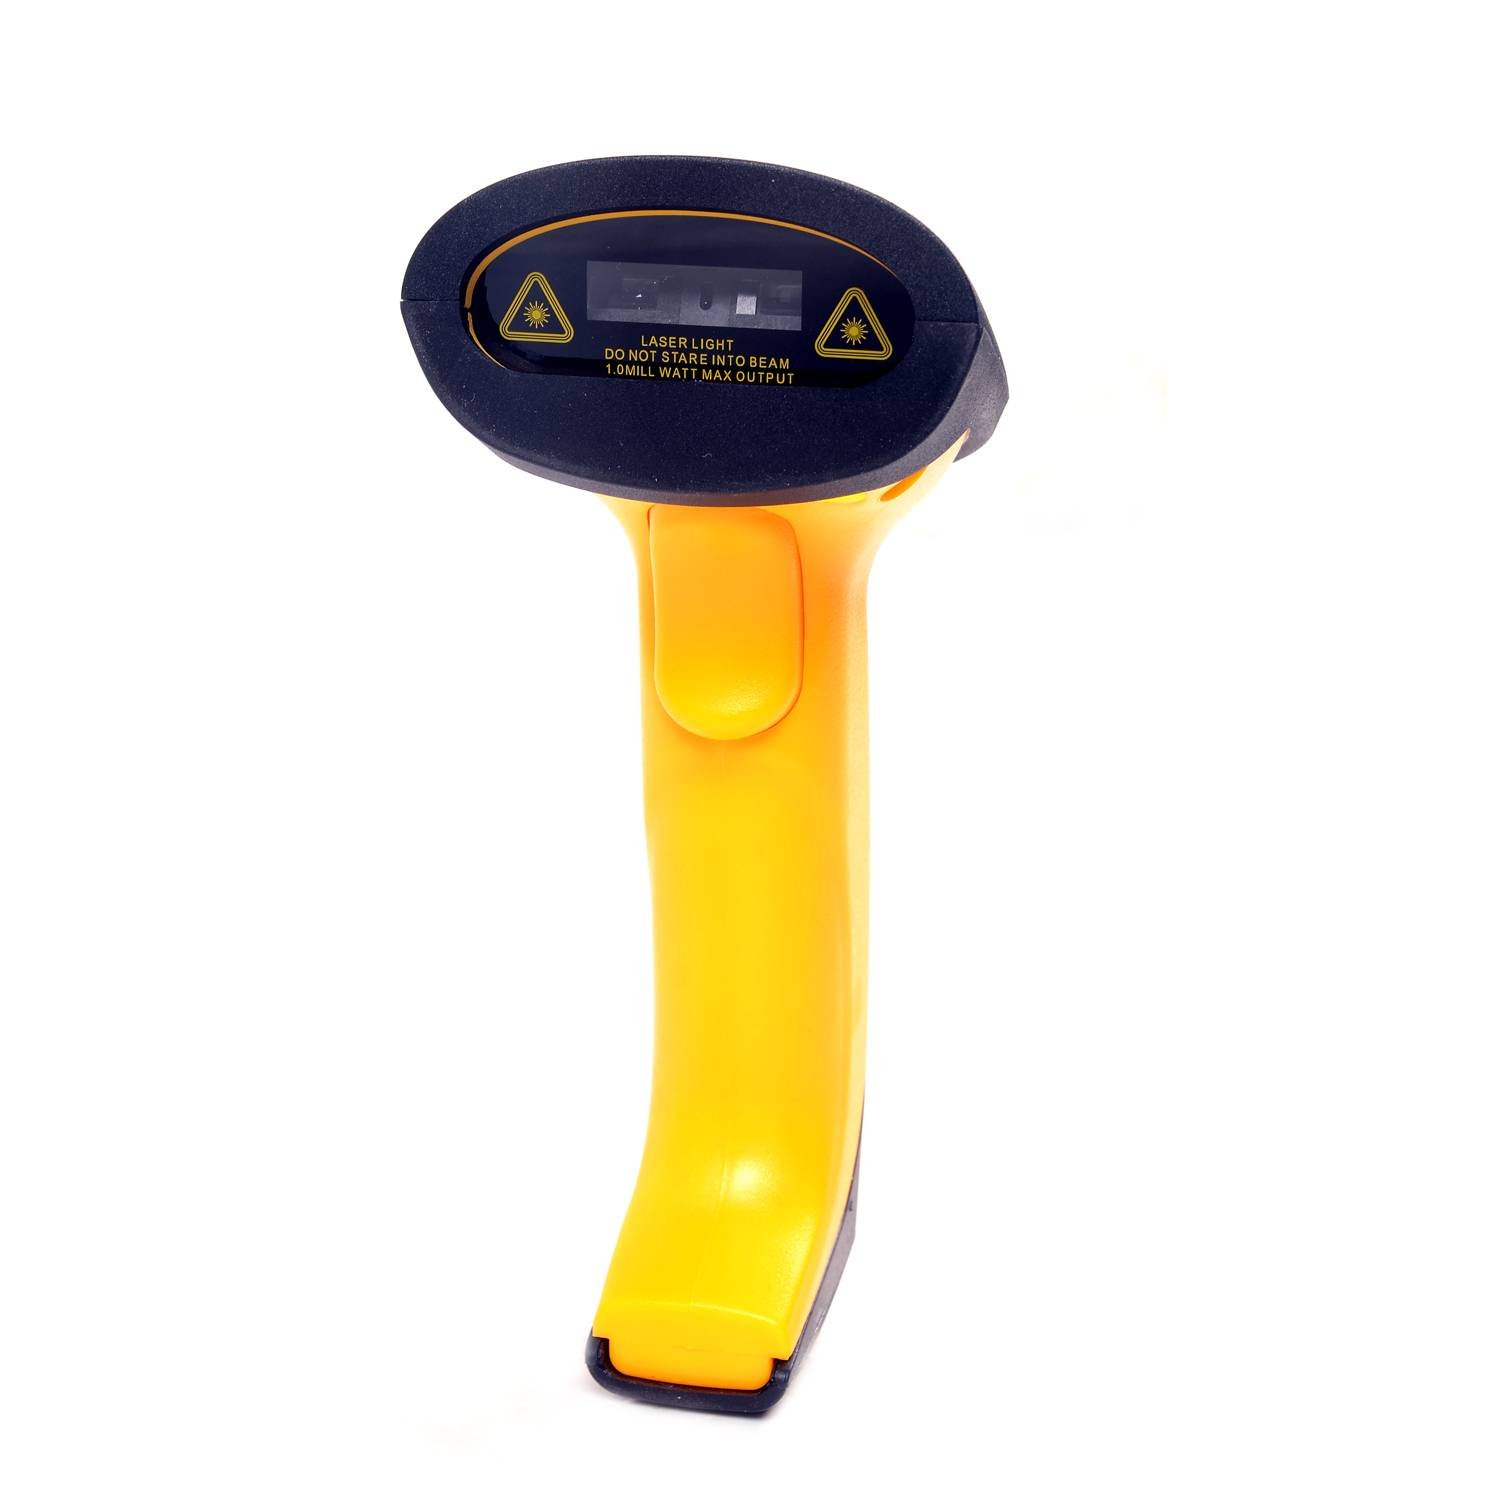 CCD21 barcode scanner